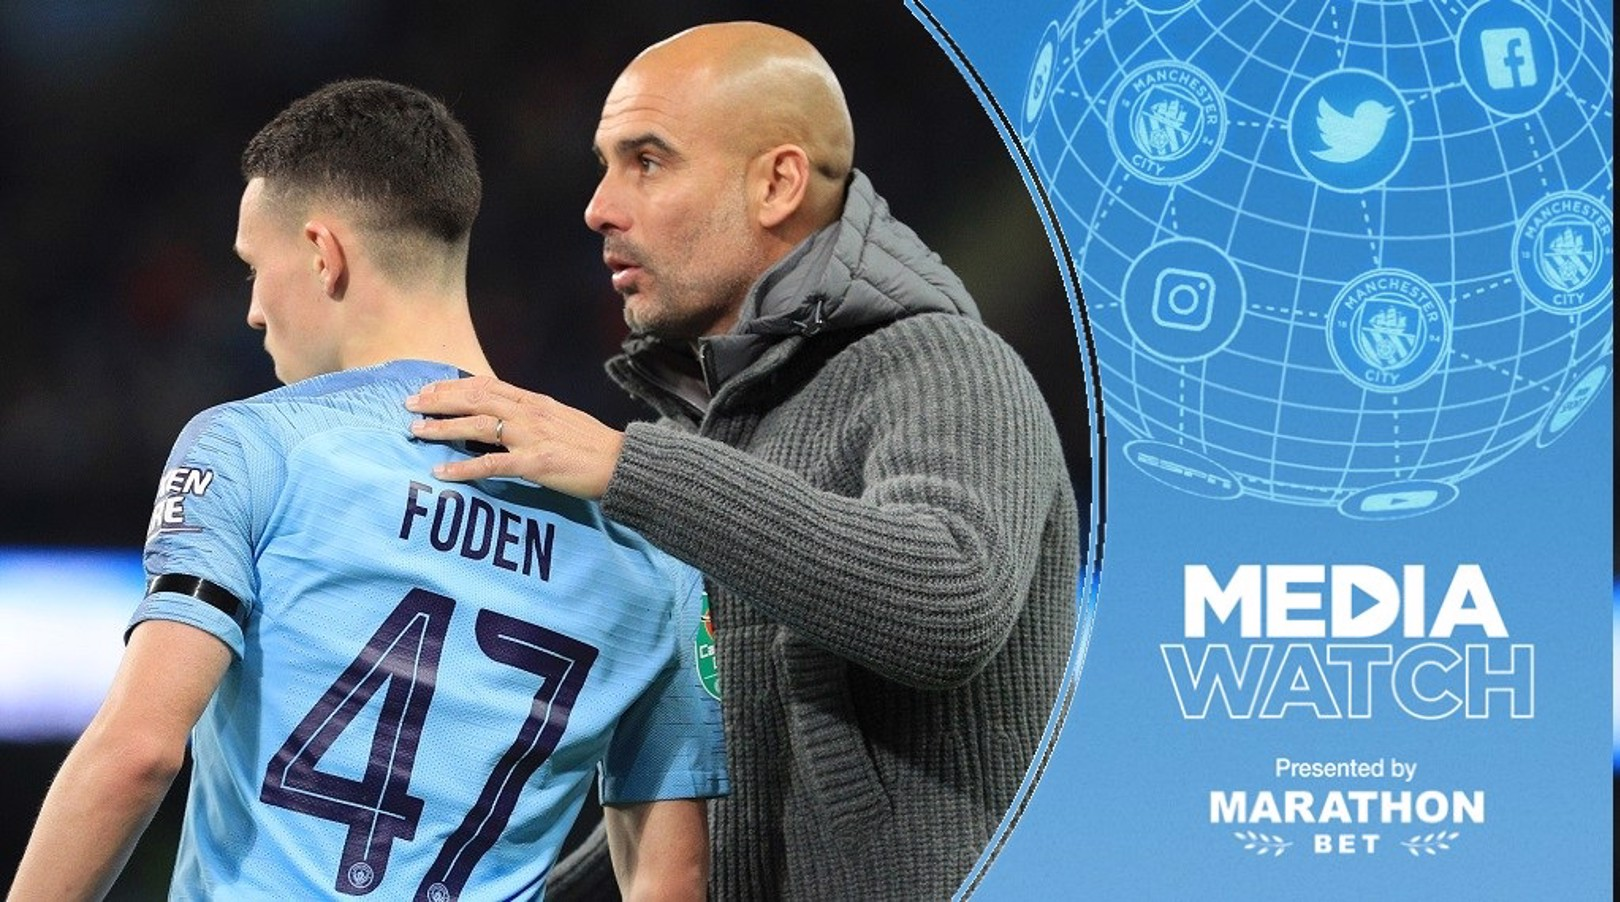 'Not even £500m would buy Foden' says Pep